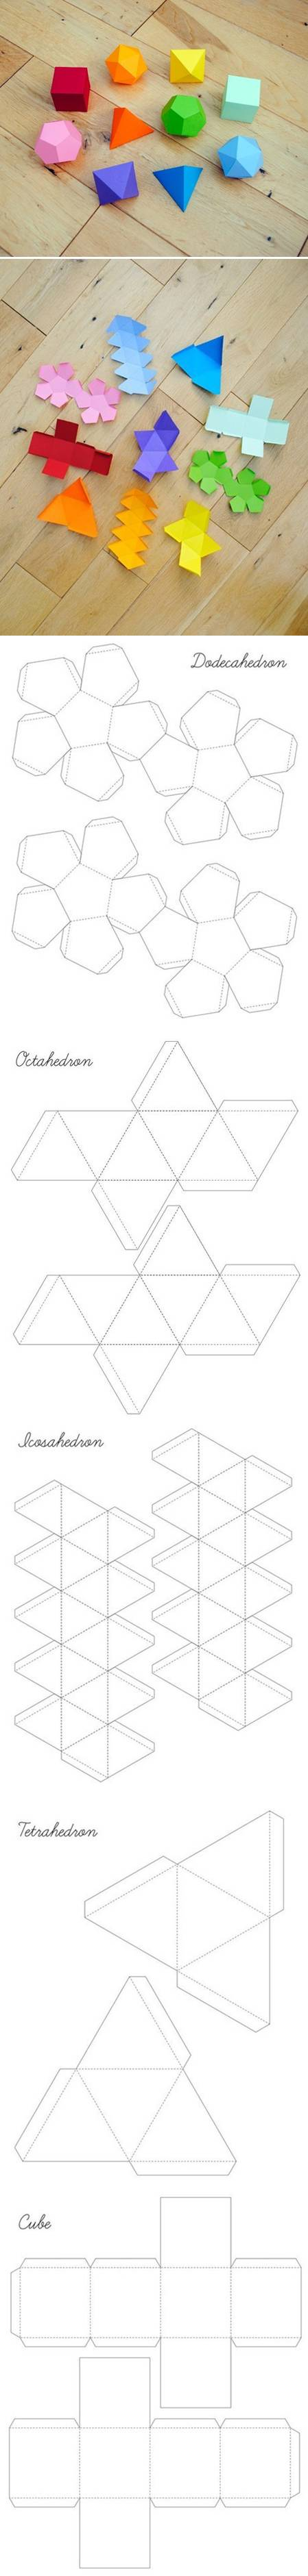 How to Make Geometrical Box Templates step by step DIY tutorial instructions